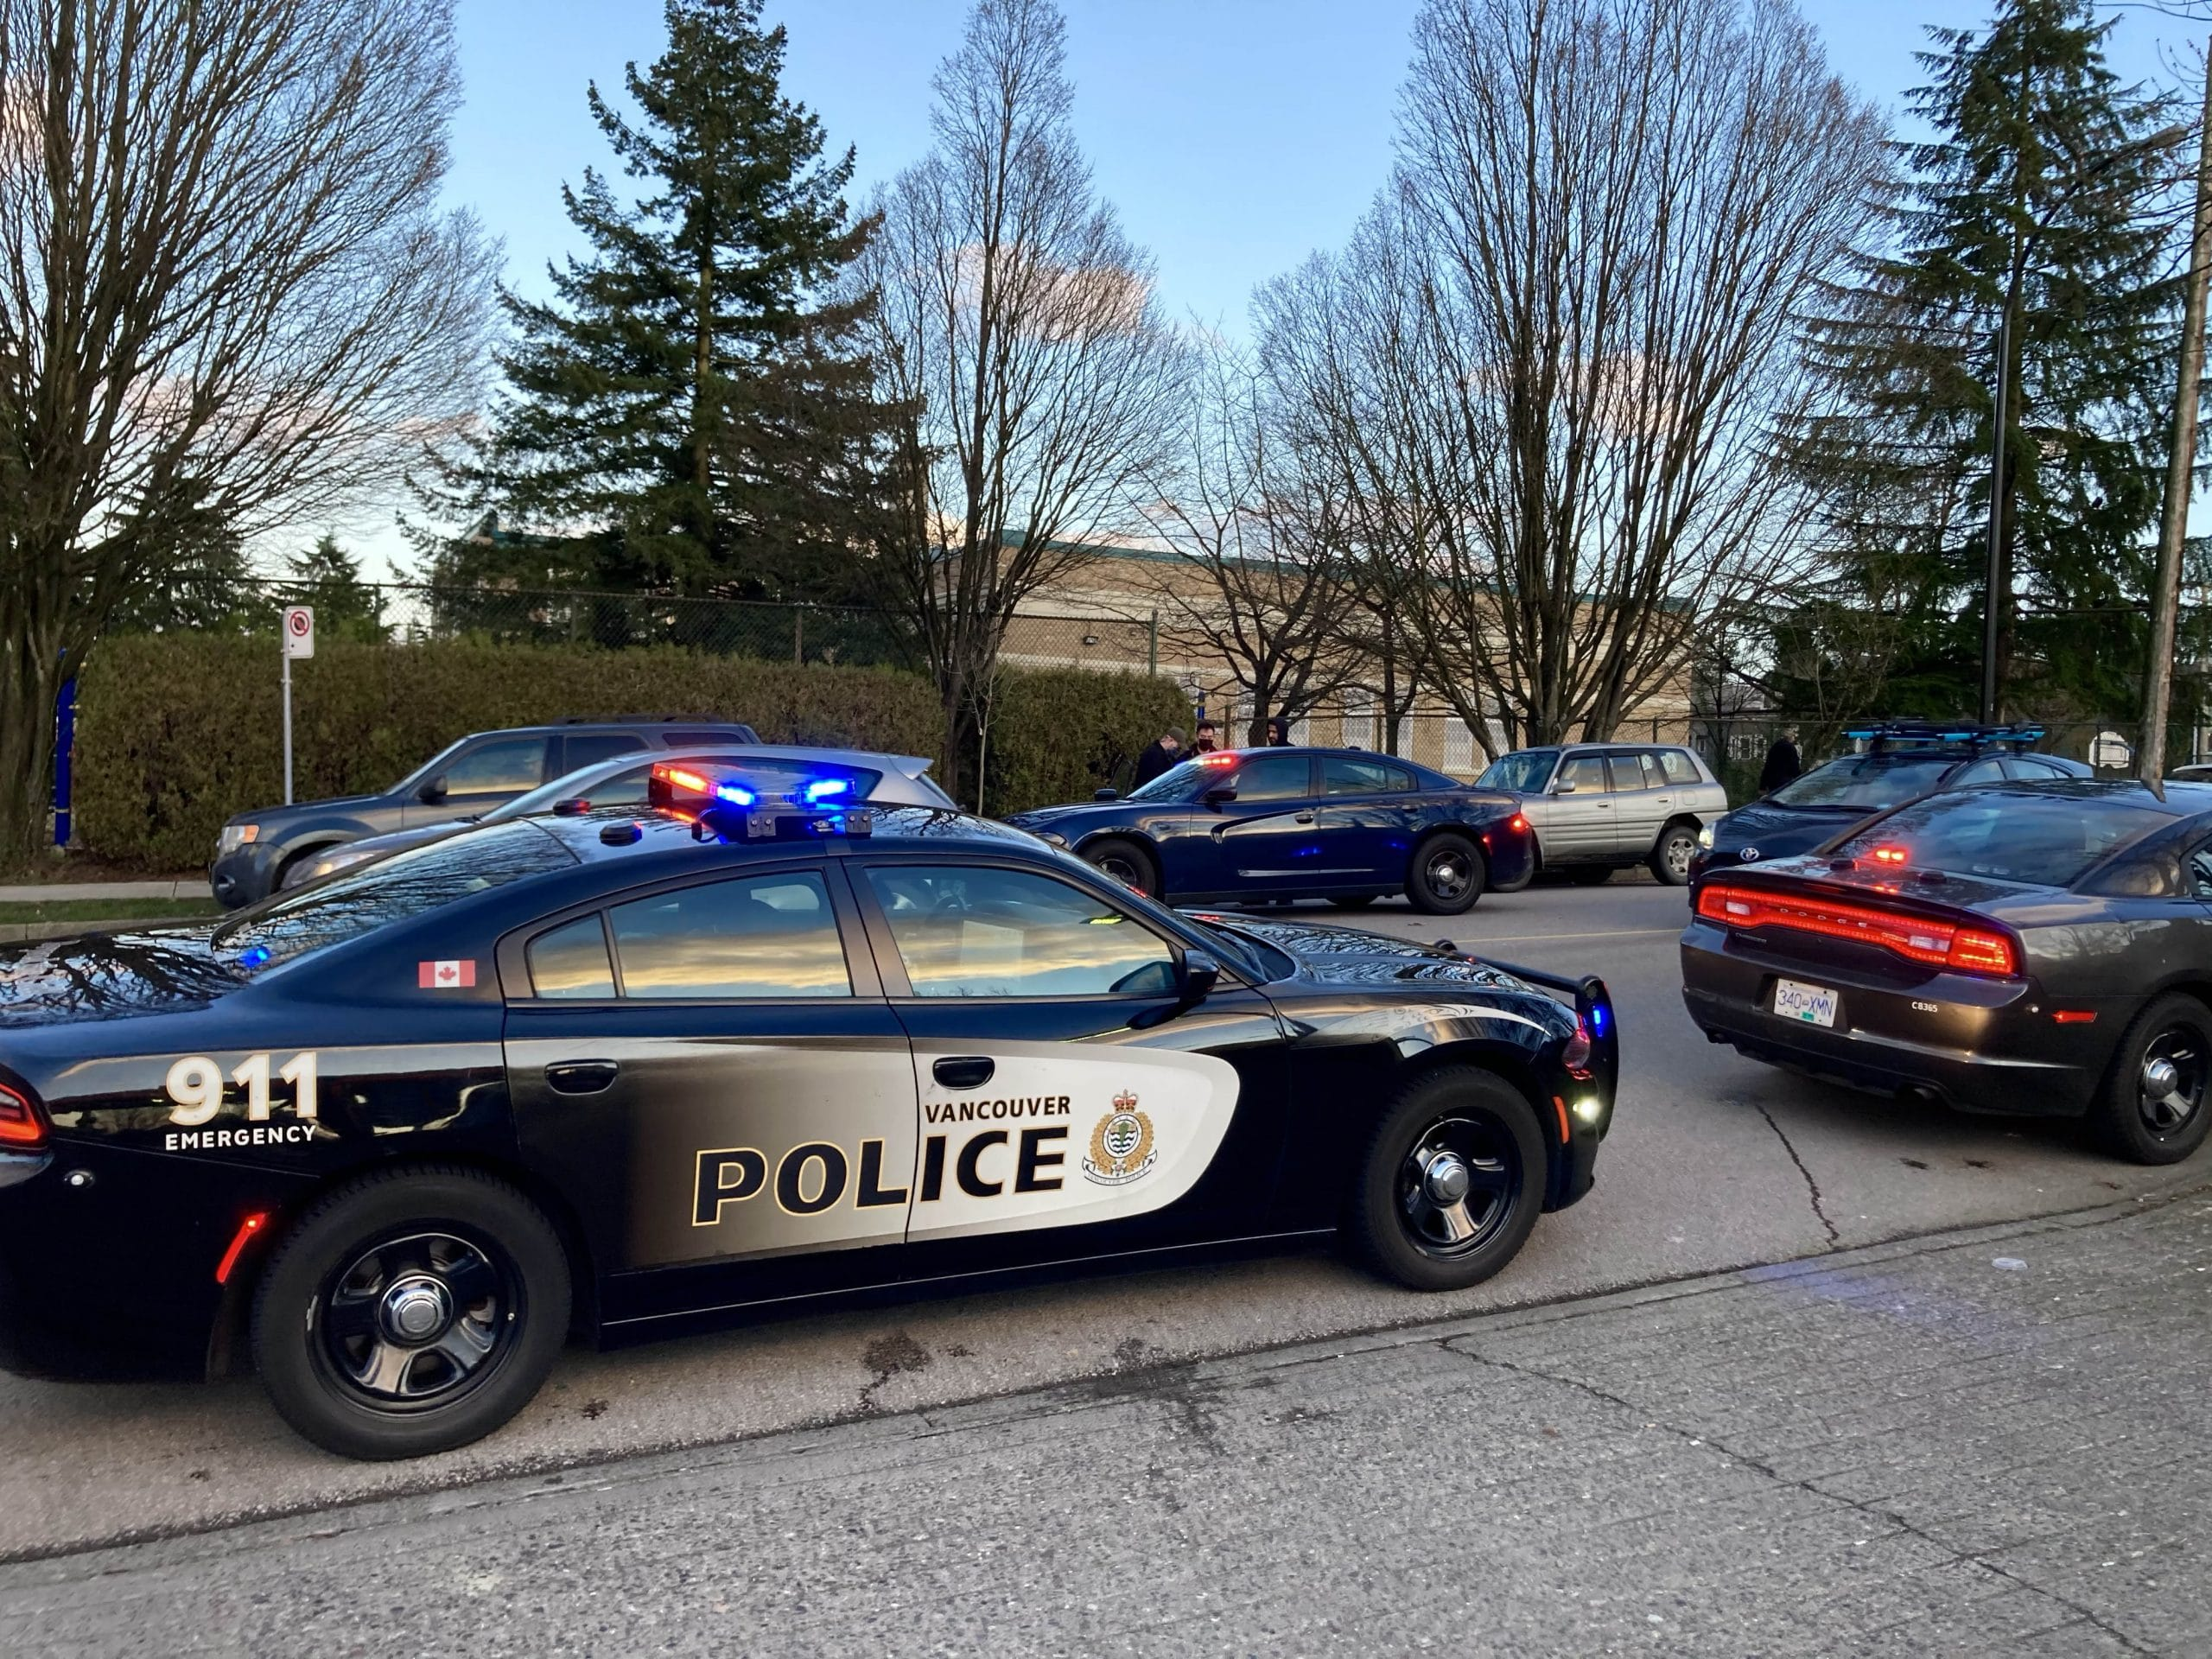 Vancouver police cars